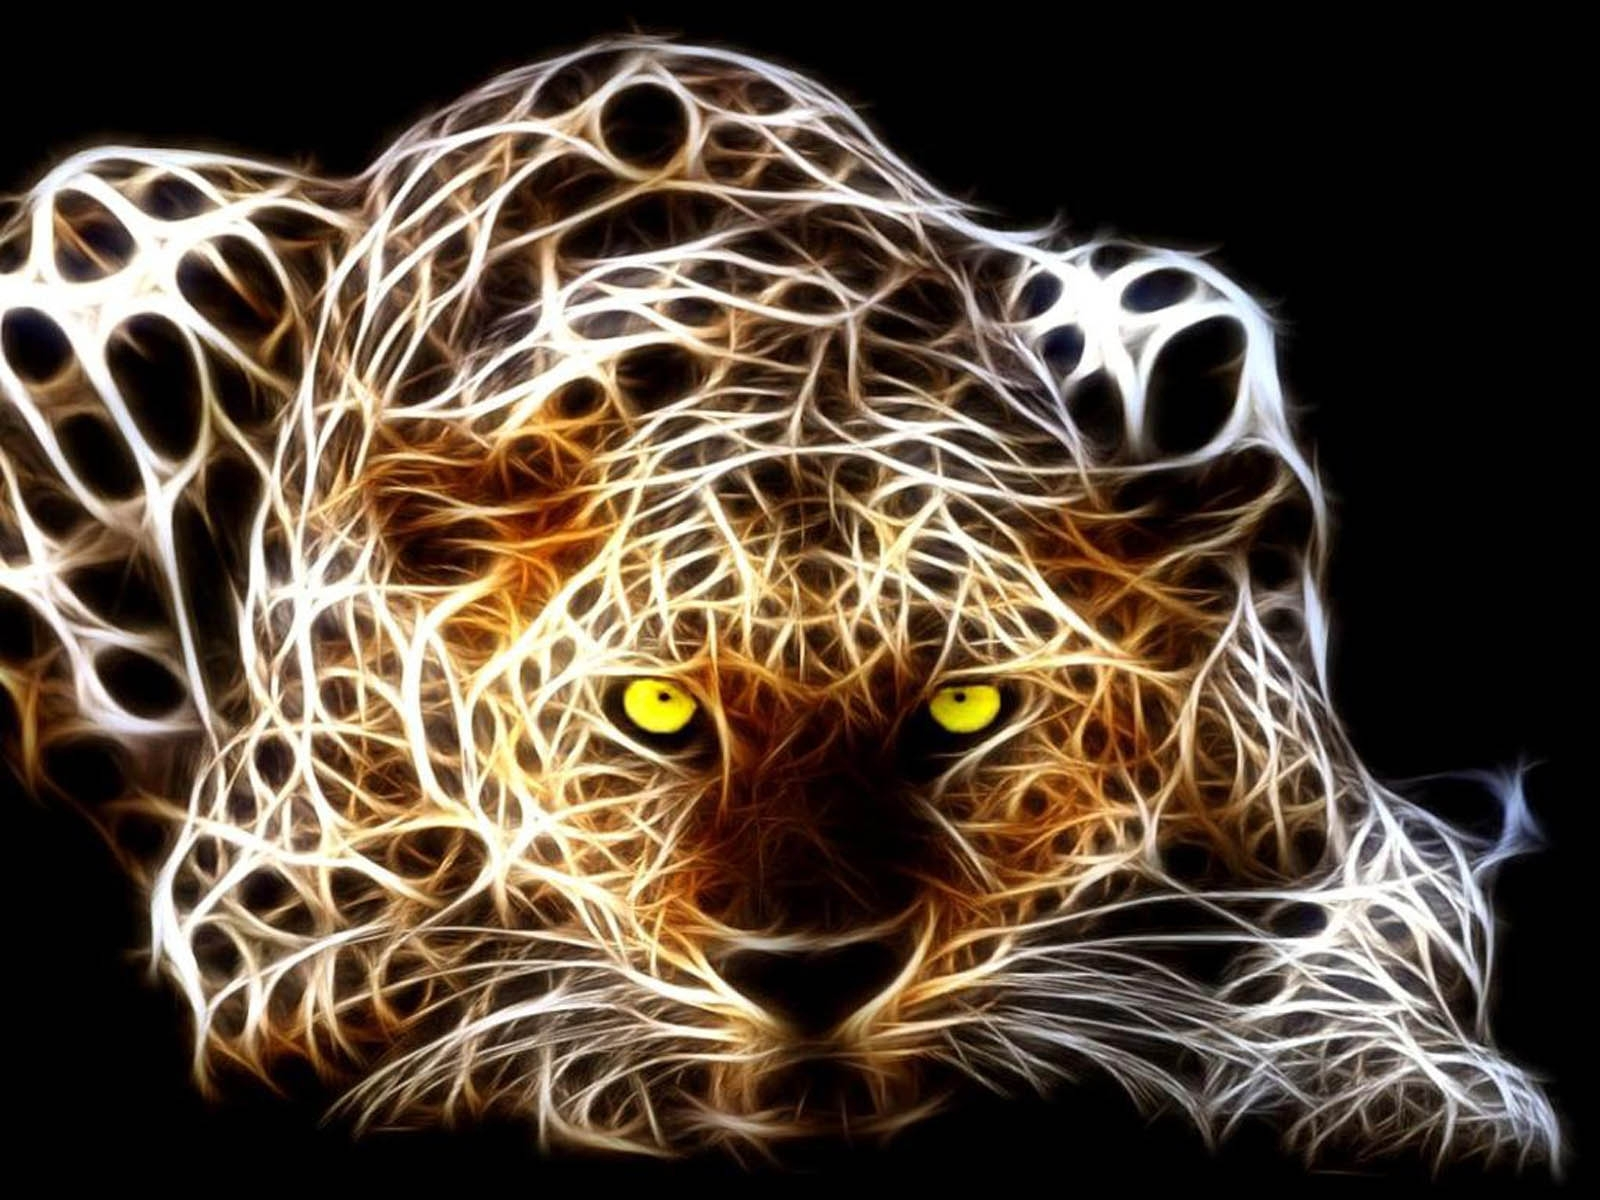 cool 3d backgrounds of tigers | tag: tiger 3d wallpapers, images